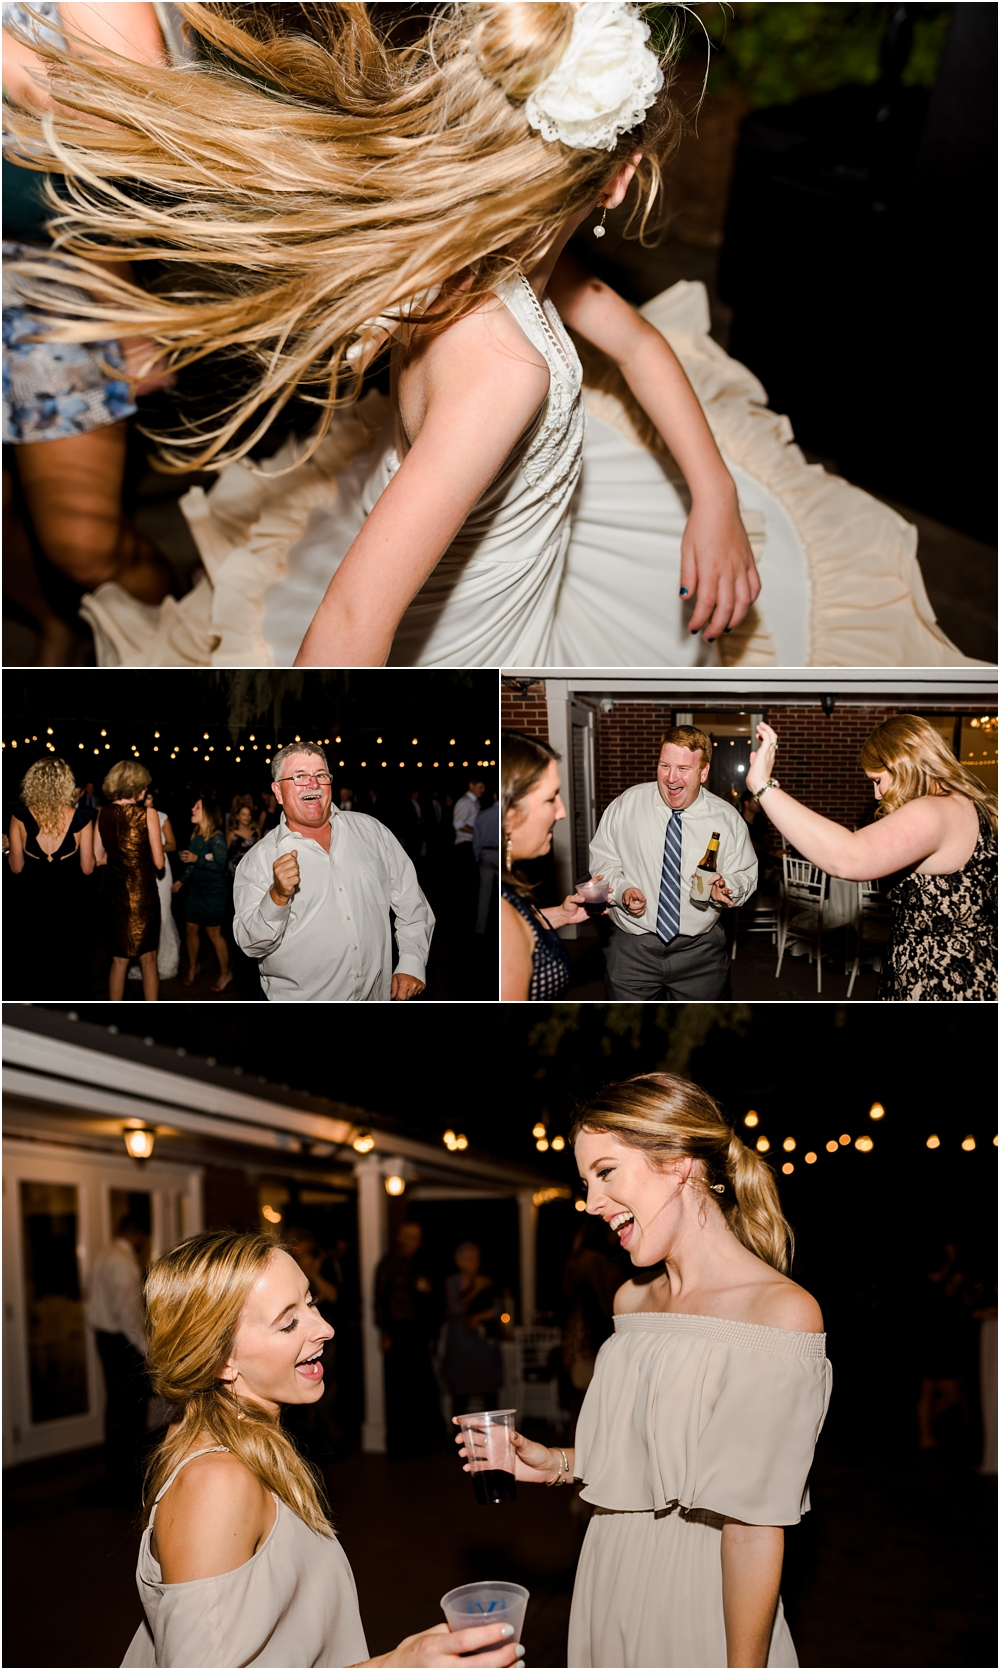 varner-florida-wedding-photographer-30a-panama-city-beach-destin-tallahassee-kiersten-grant-photography-167.jpg